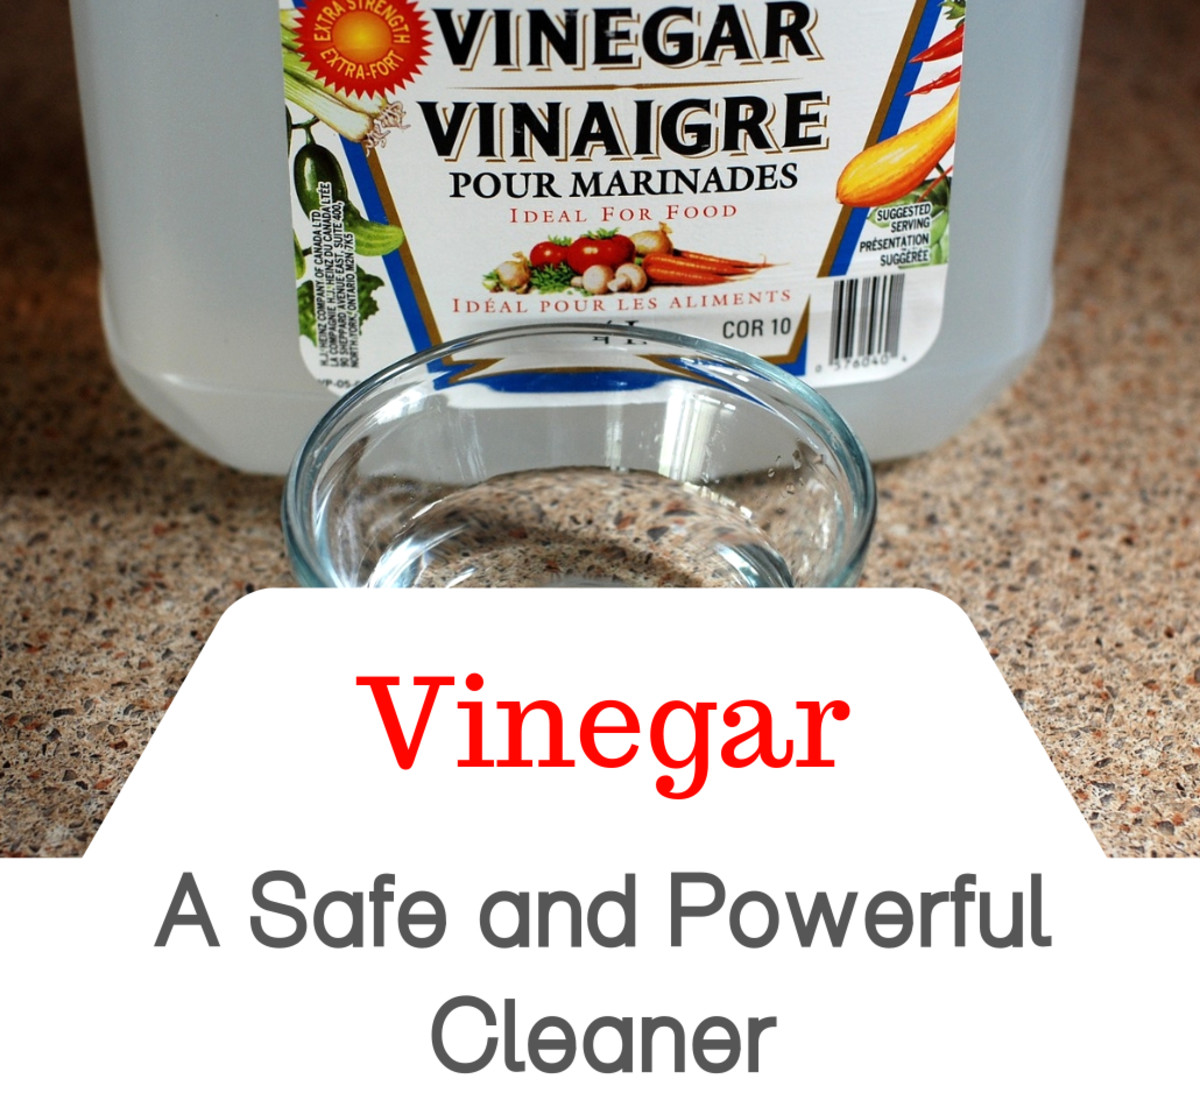 Make your home a healthier place for you and your family by cleaning with white distilled vinegar.